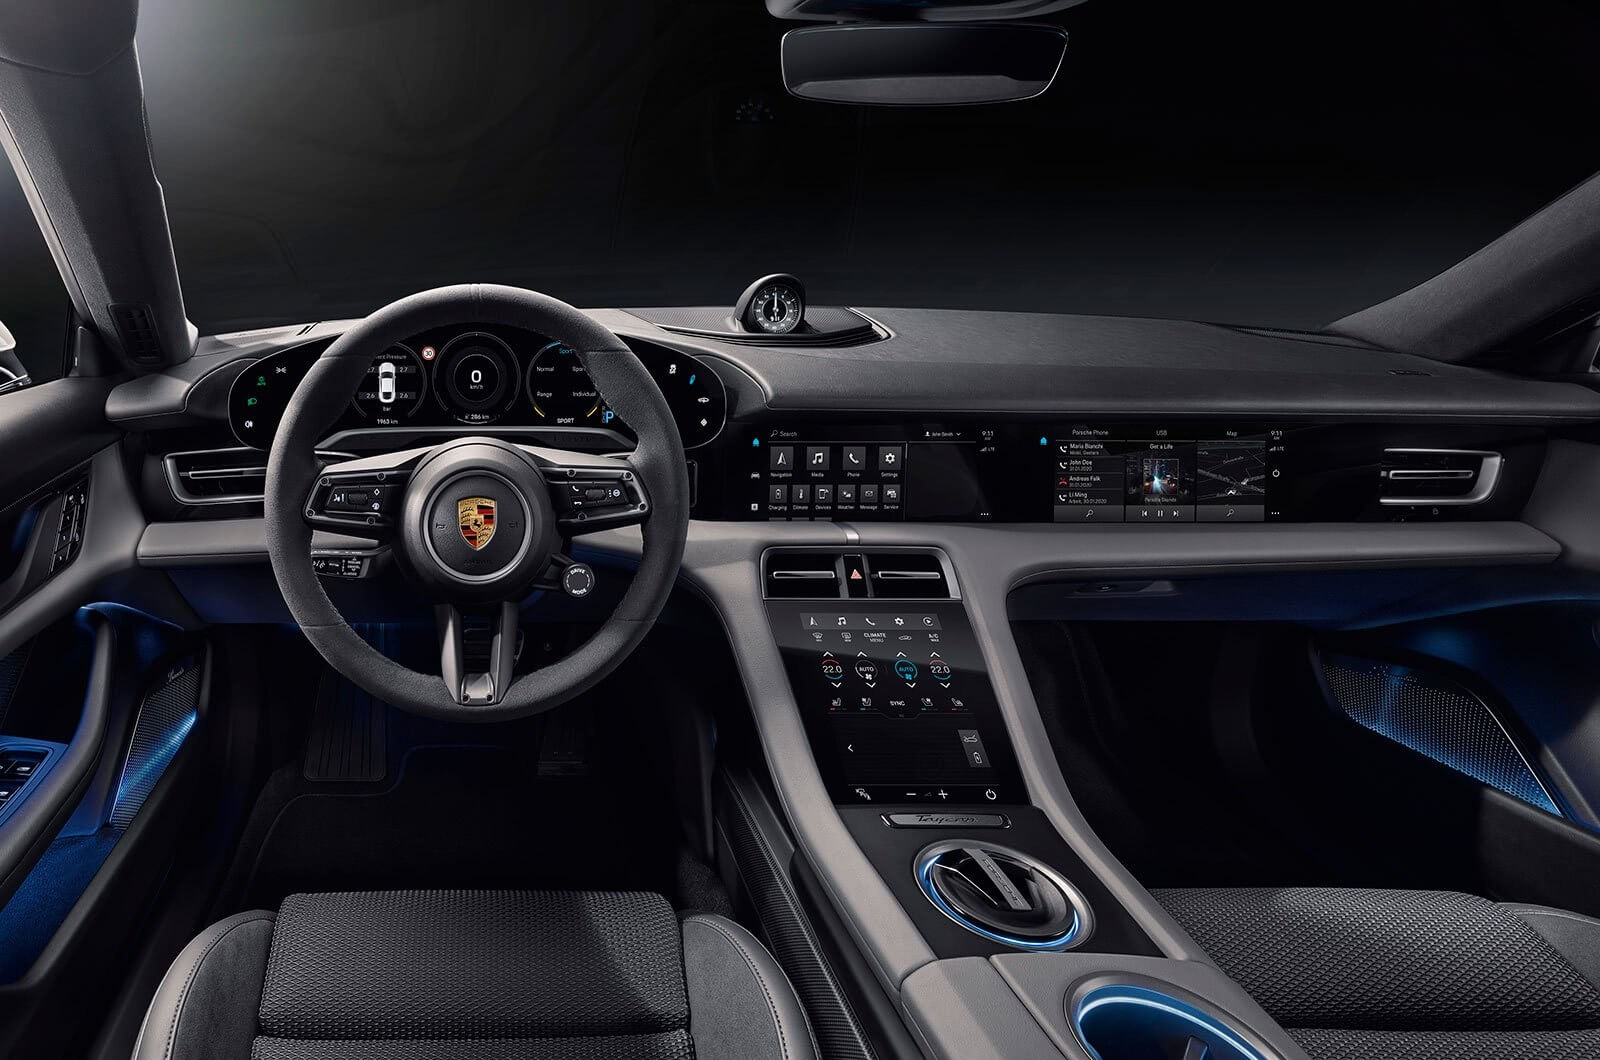 The Porsche Taycan comes with so many screens, even the passenger has one